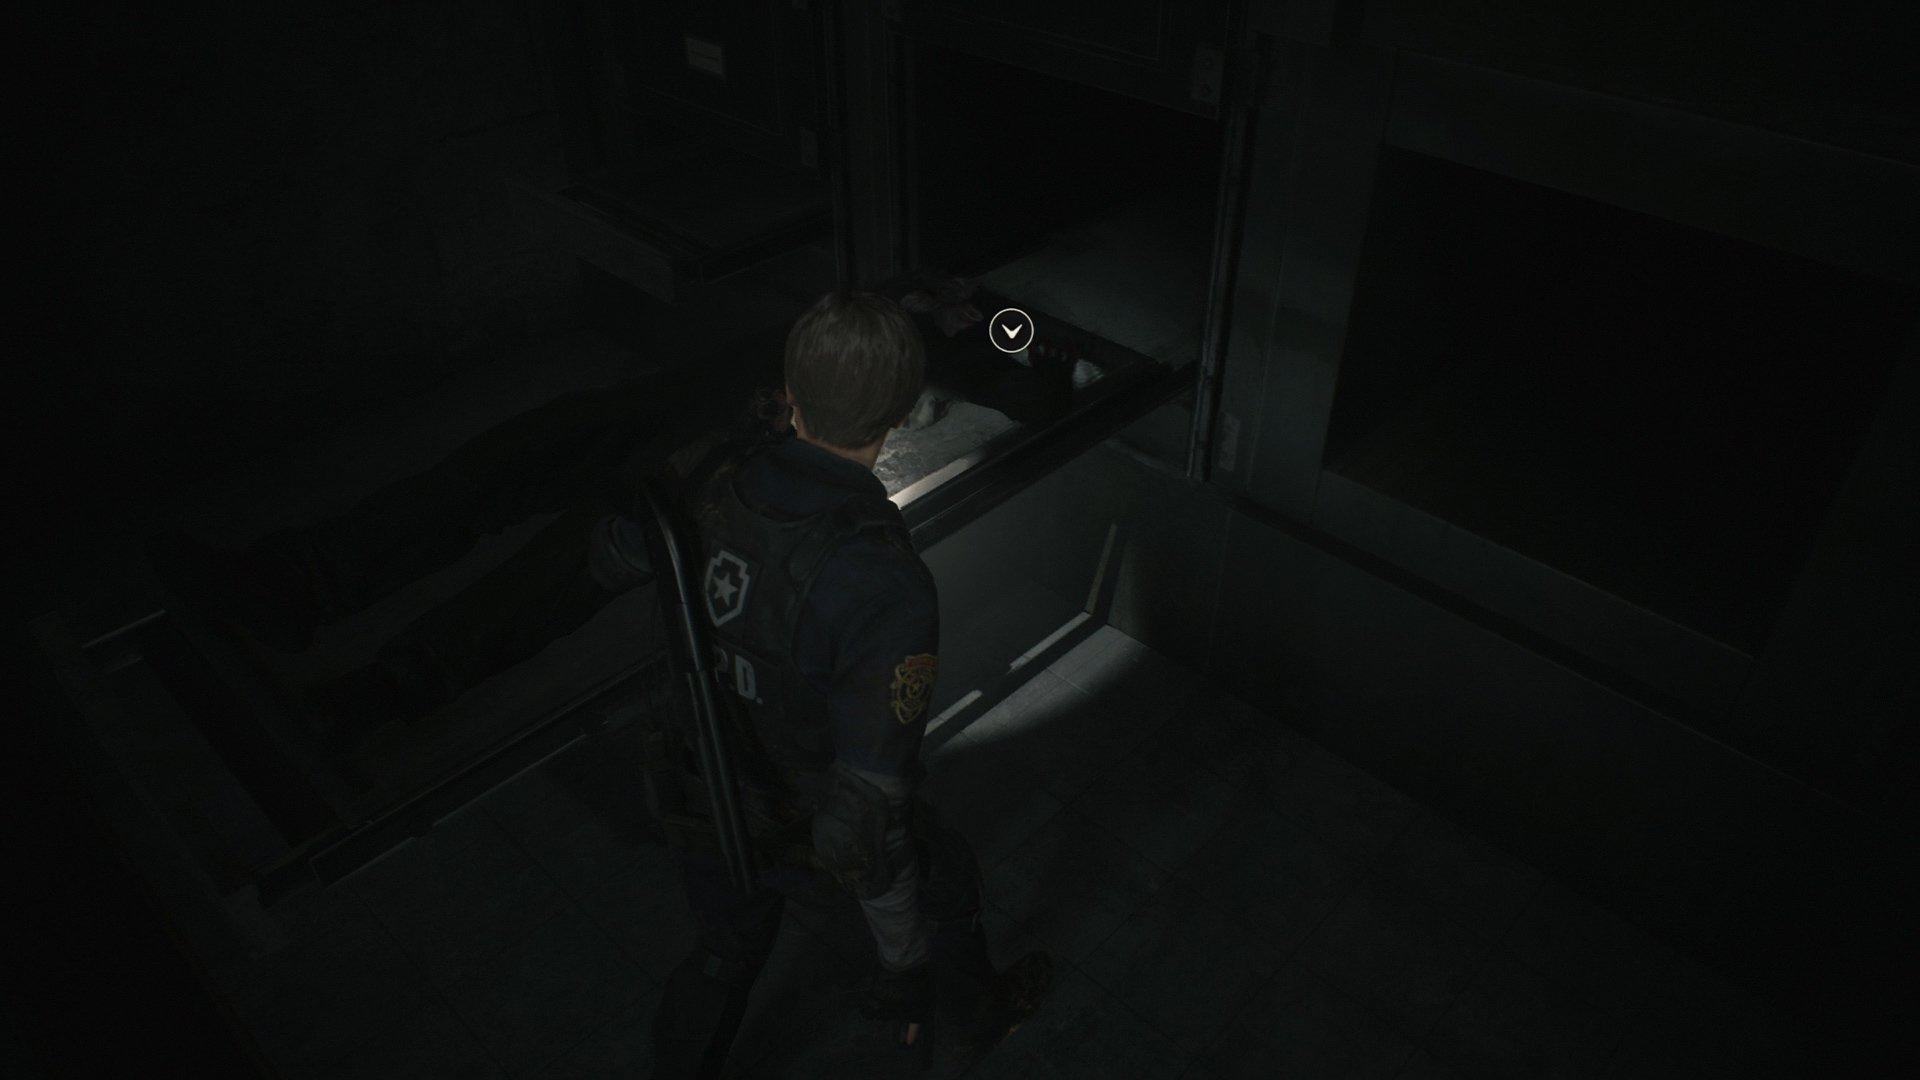 Resident Evil 2 Diamond key location